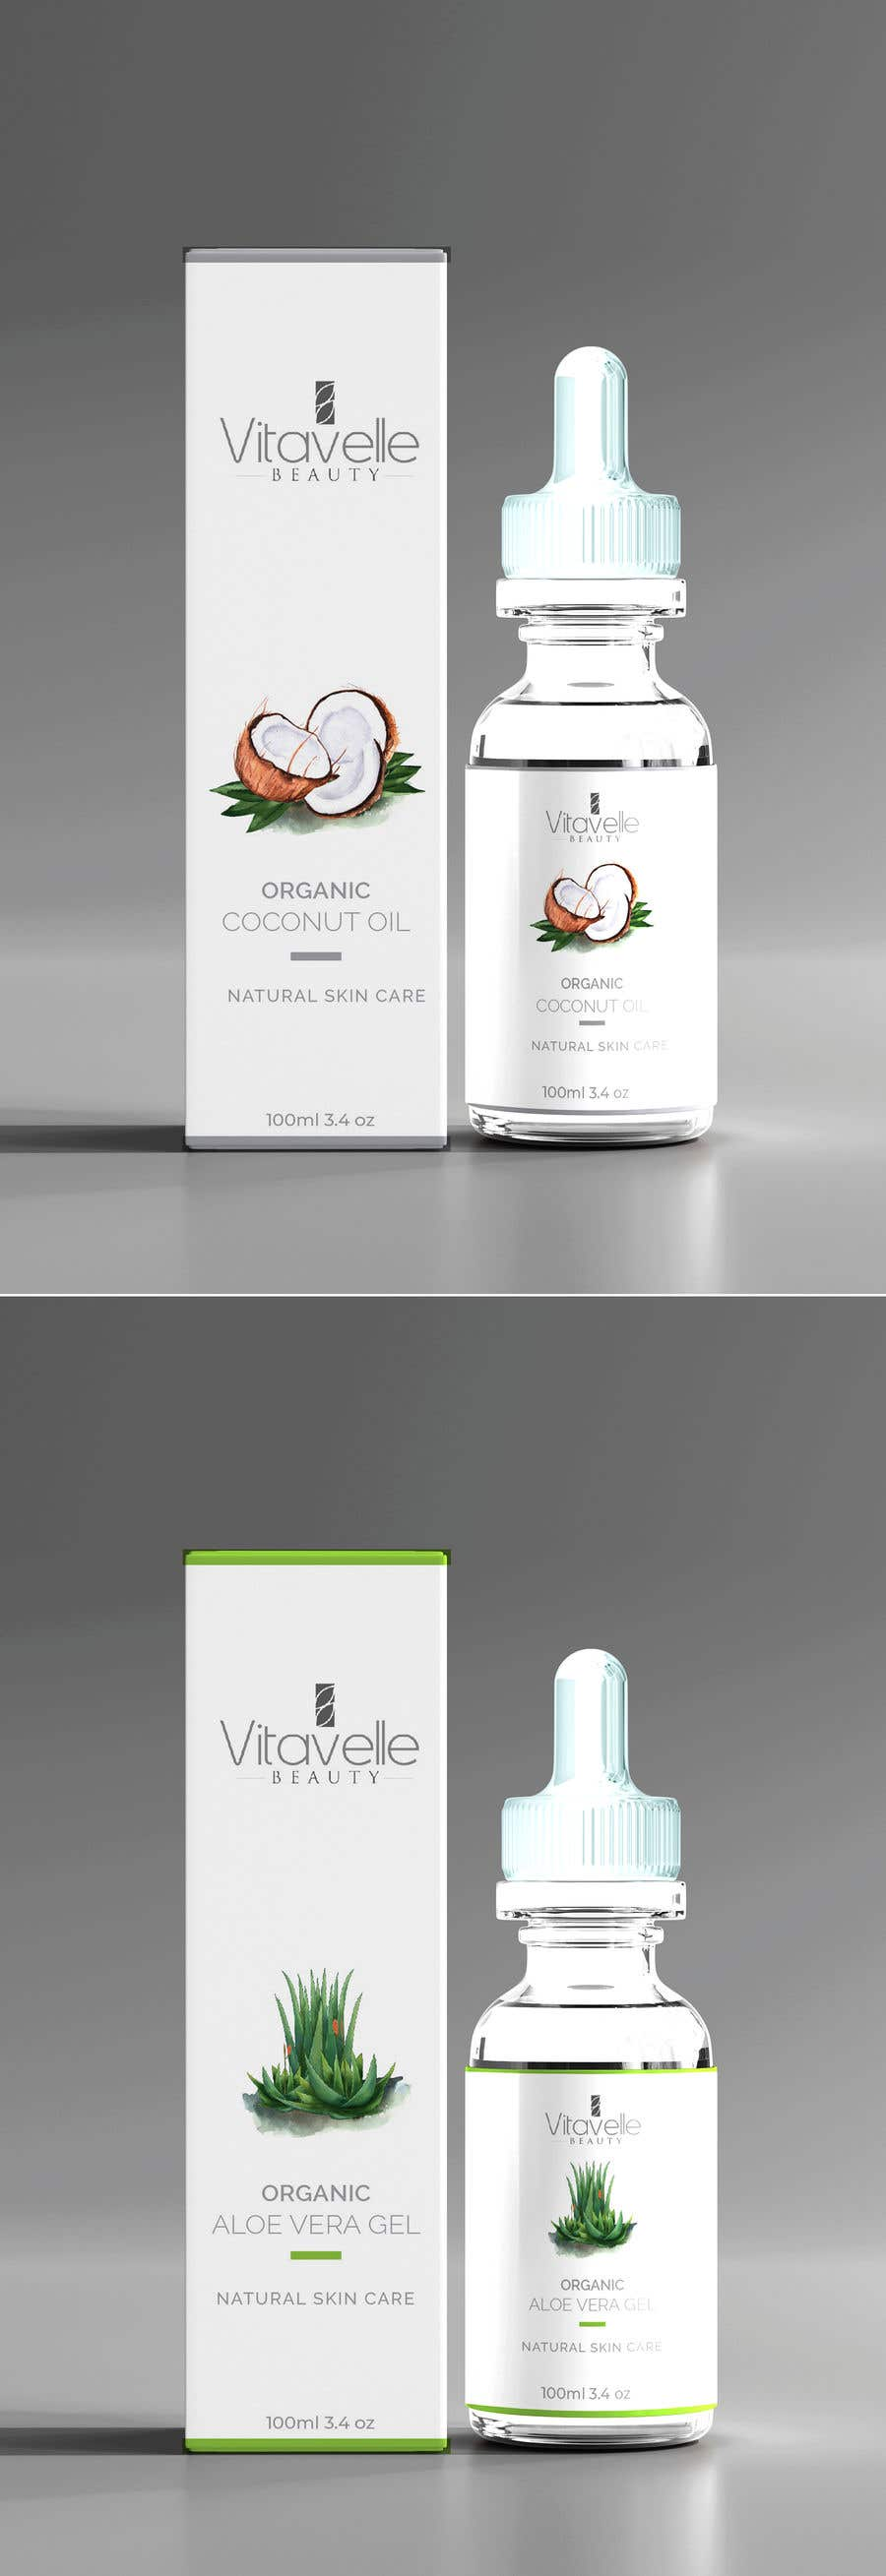 Bài tham dự cuộc thi #                                        47                                      cho                                         Create Product Label and Packaging Designs